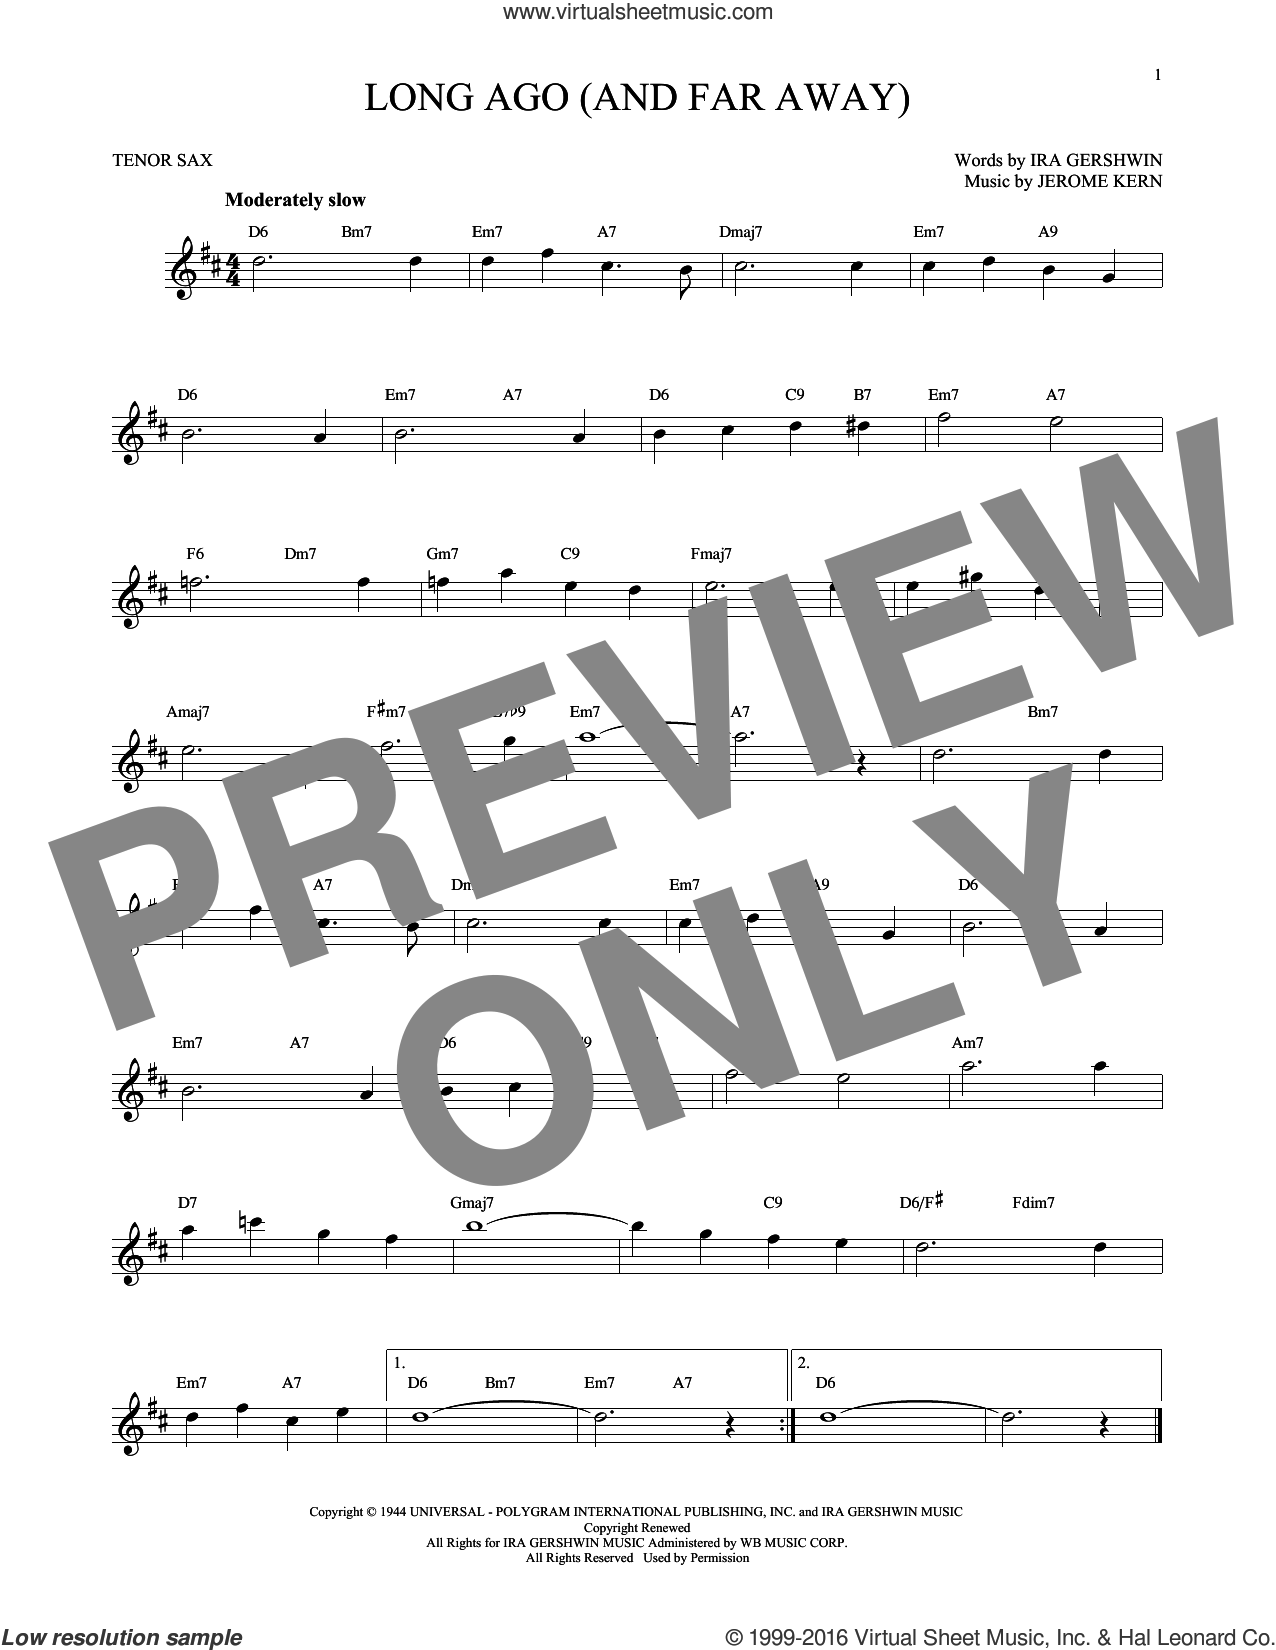 Long Ago (And Far Away) sheet music for tenor saxophone solo by Ira Gershwin and Jerome Kern, intermediate skill level